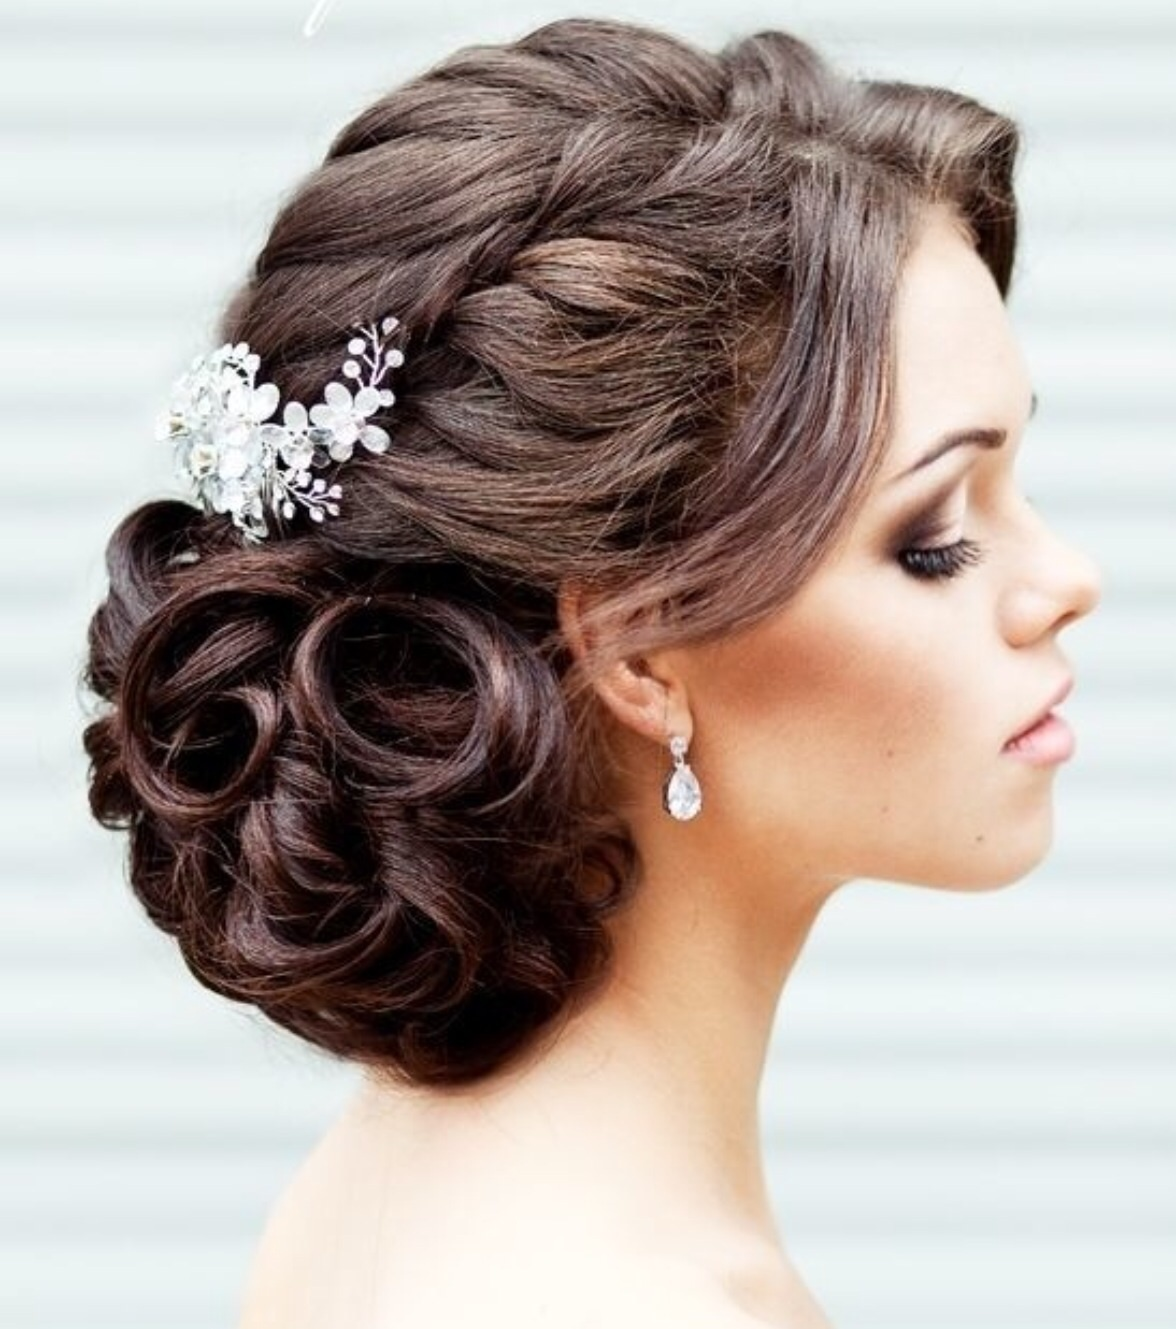 The most beautiful evening hairstyles in the Greek theme. Photo №4